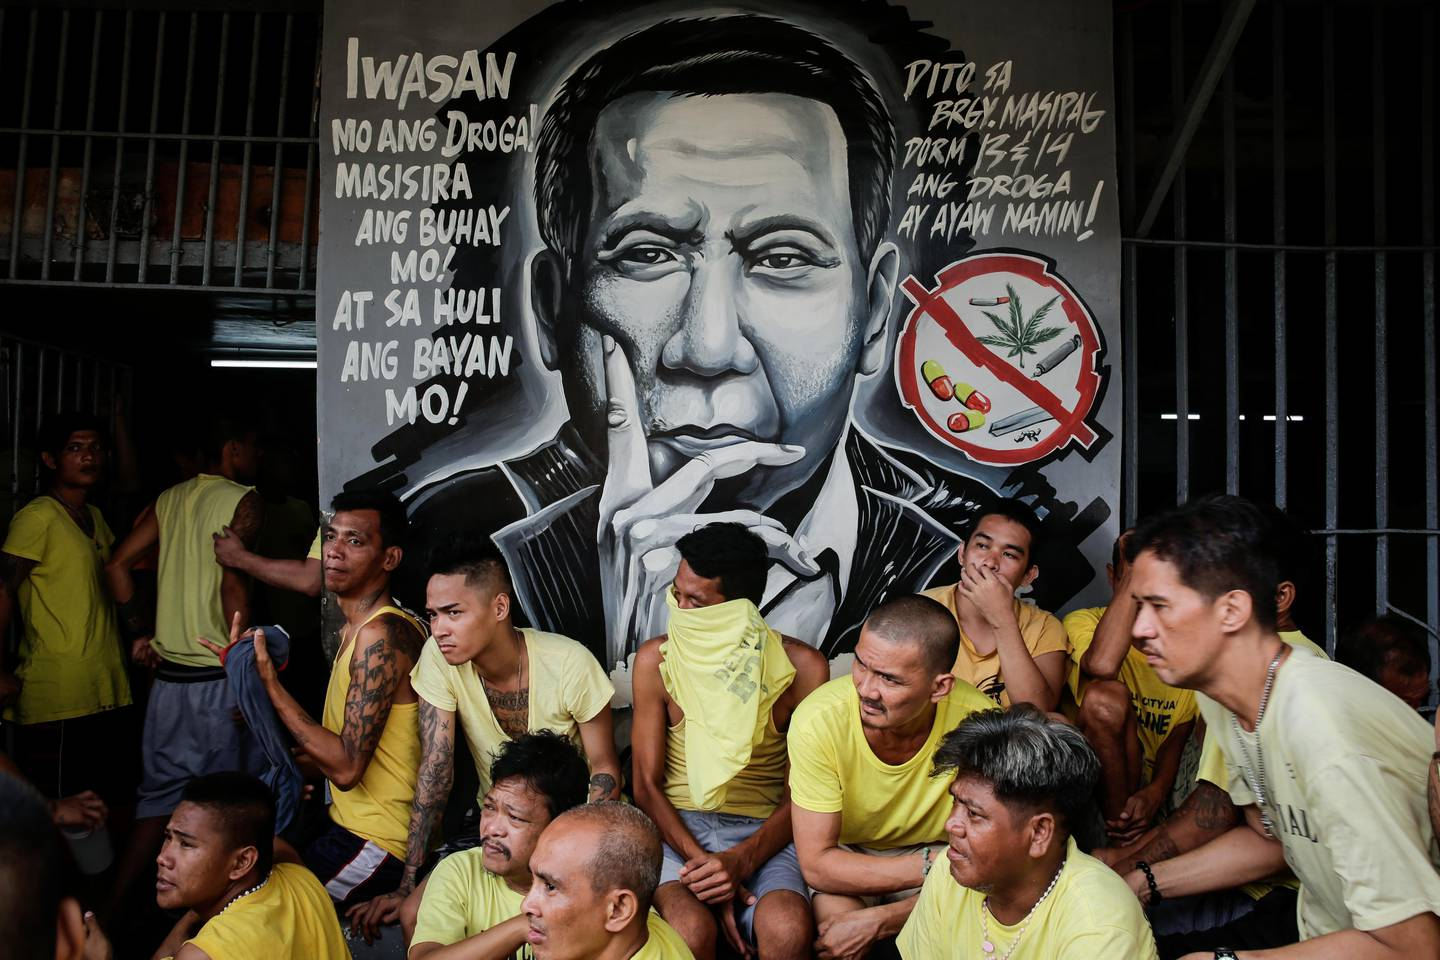 epa06268548 Inmates await clearance next to an image of Philippine President Rodrigo Duterte during a surprise inspection by the Bureau of Jail Management and Penology (BJMP) at the Manila City Jail in Manila, Philippines, 16 October 2017. The BJMP recovered several bladed weapons and illegal contrabands during the operation called 'Oplan Greyhound'.  EPA/MARK R. CRISTINO